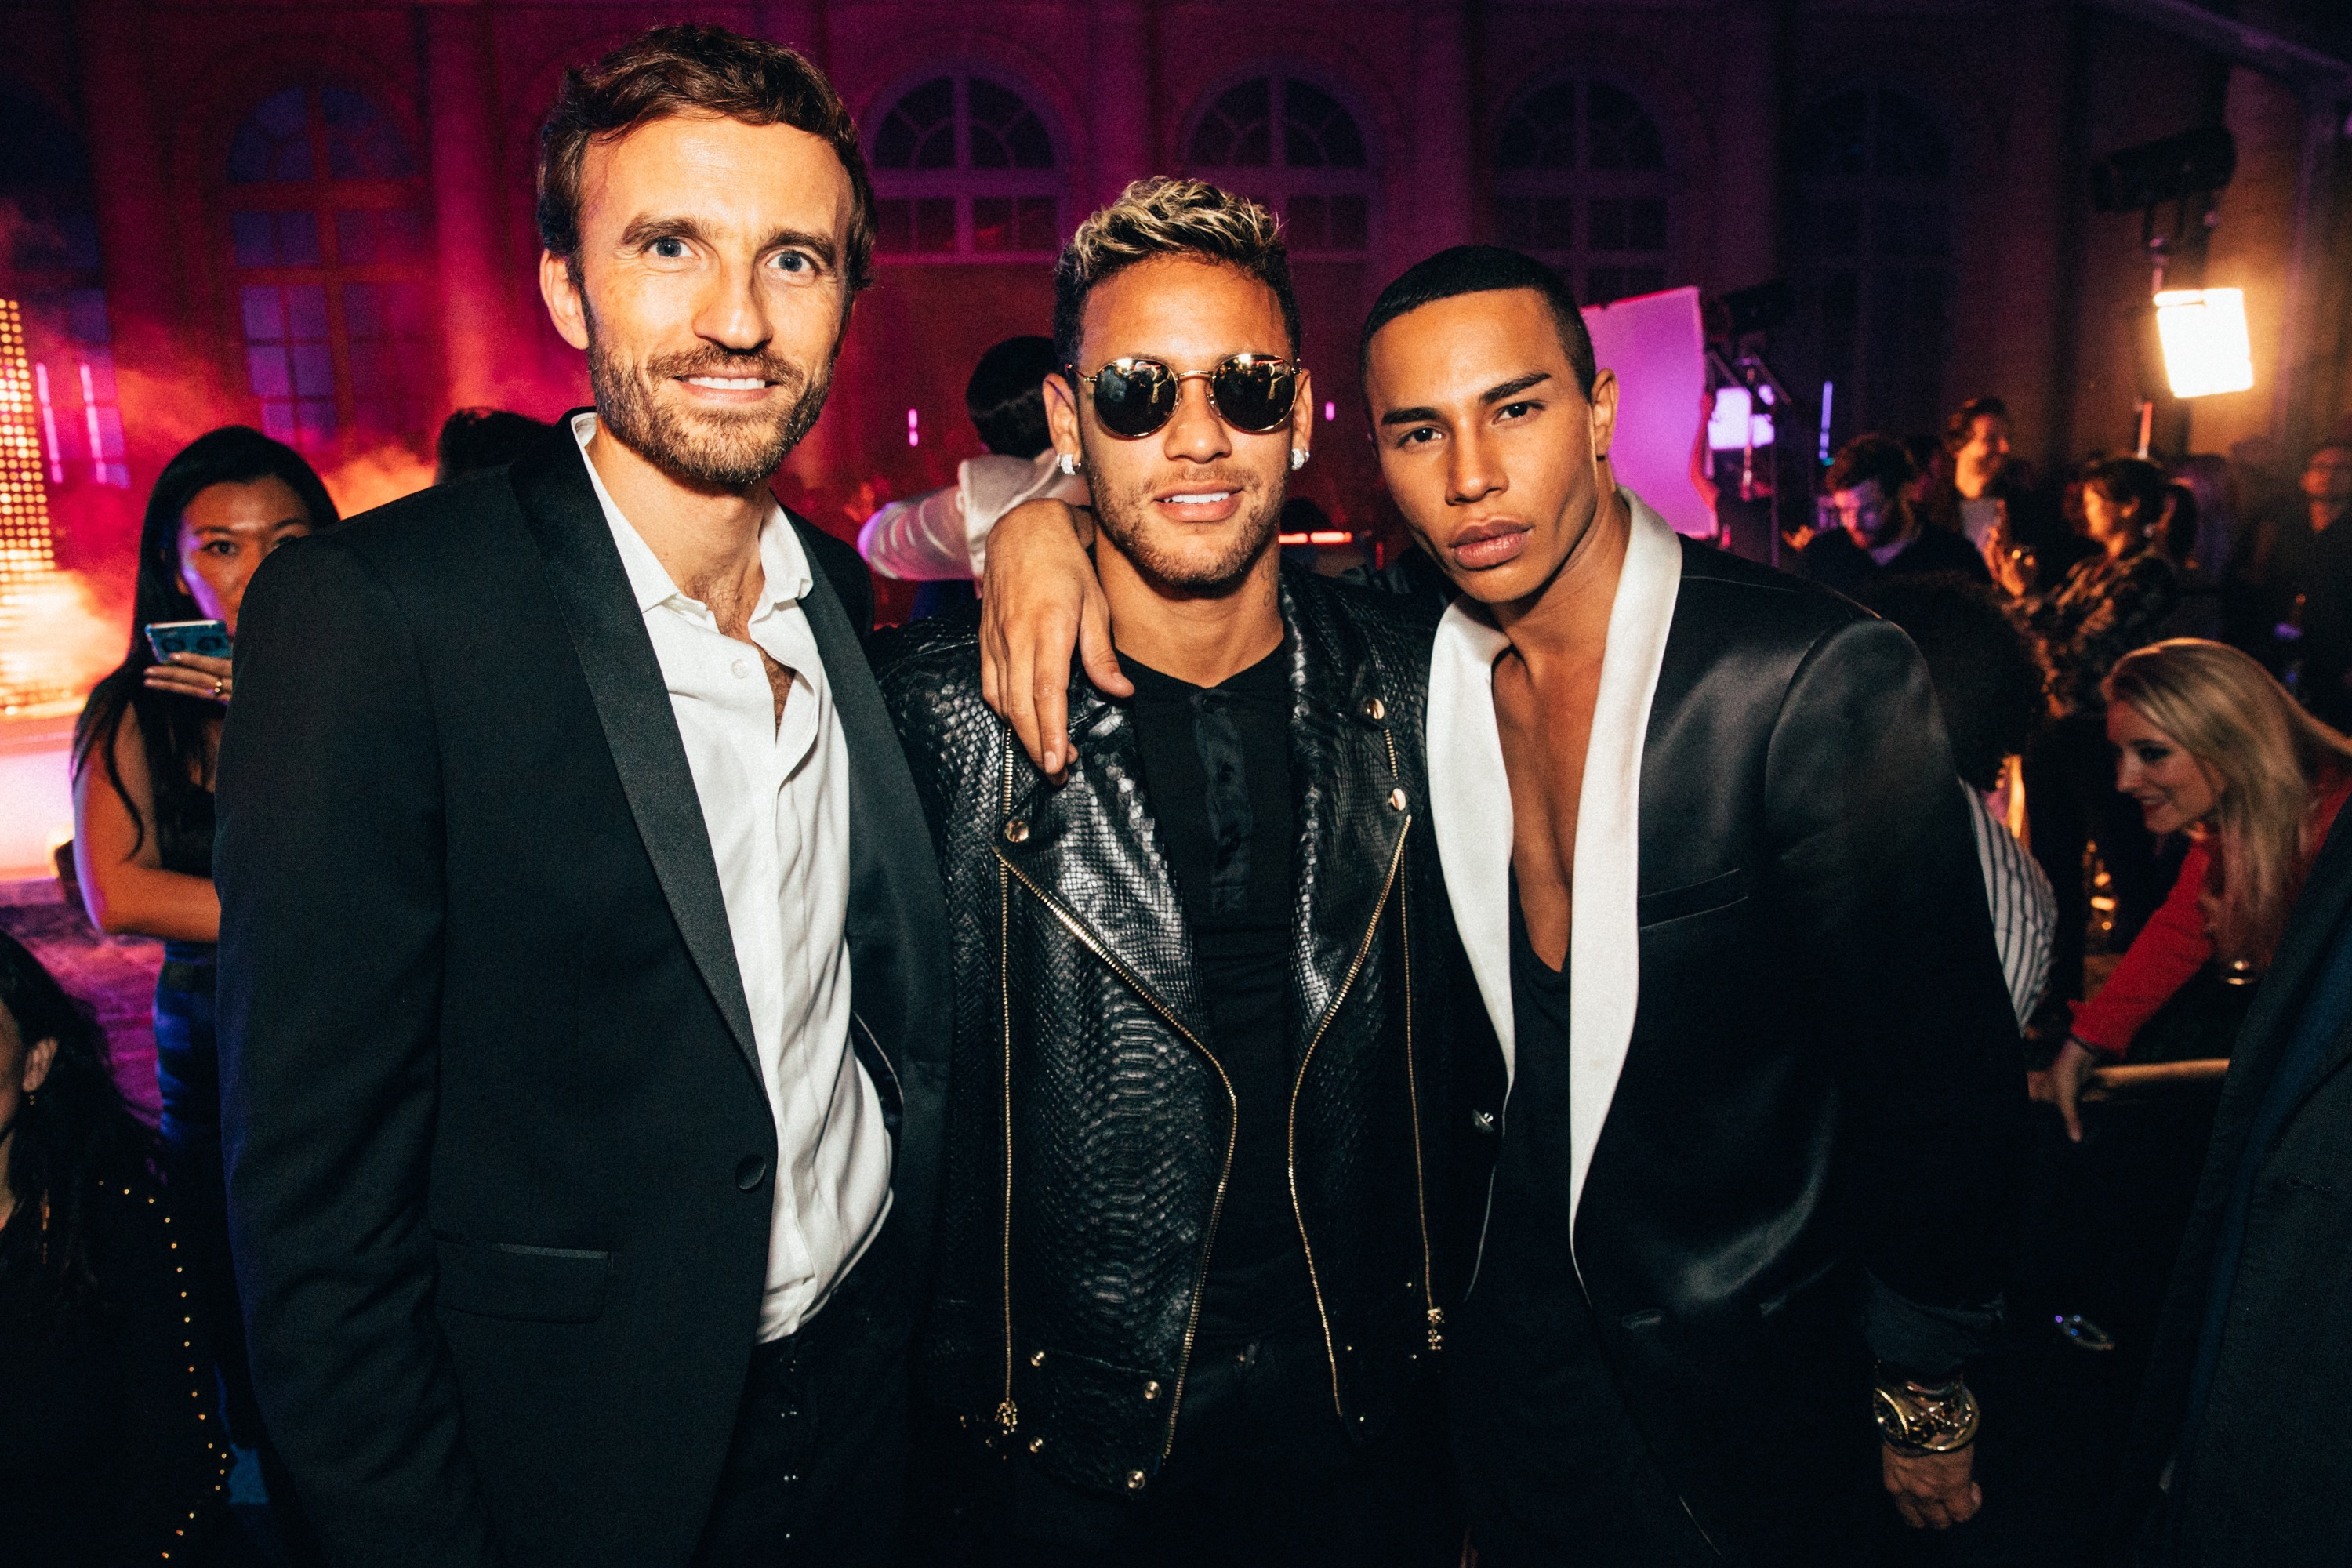 L'OREAL PARIS x BALMAIN PFW PARTY